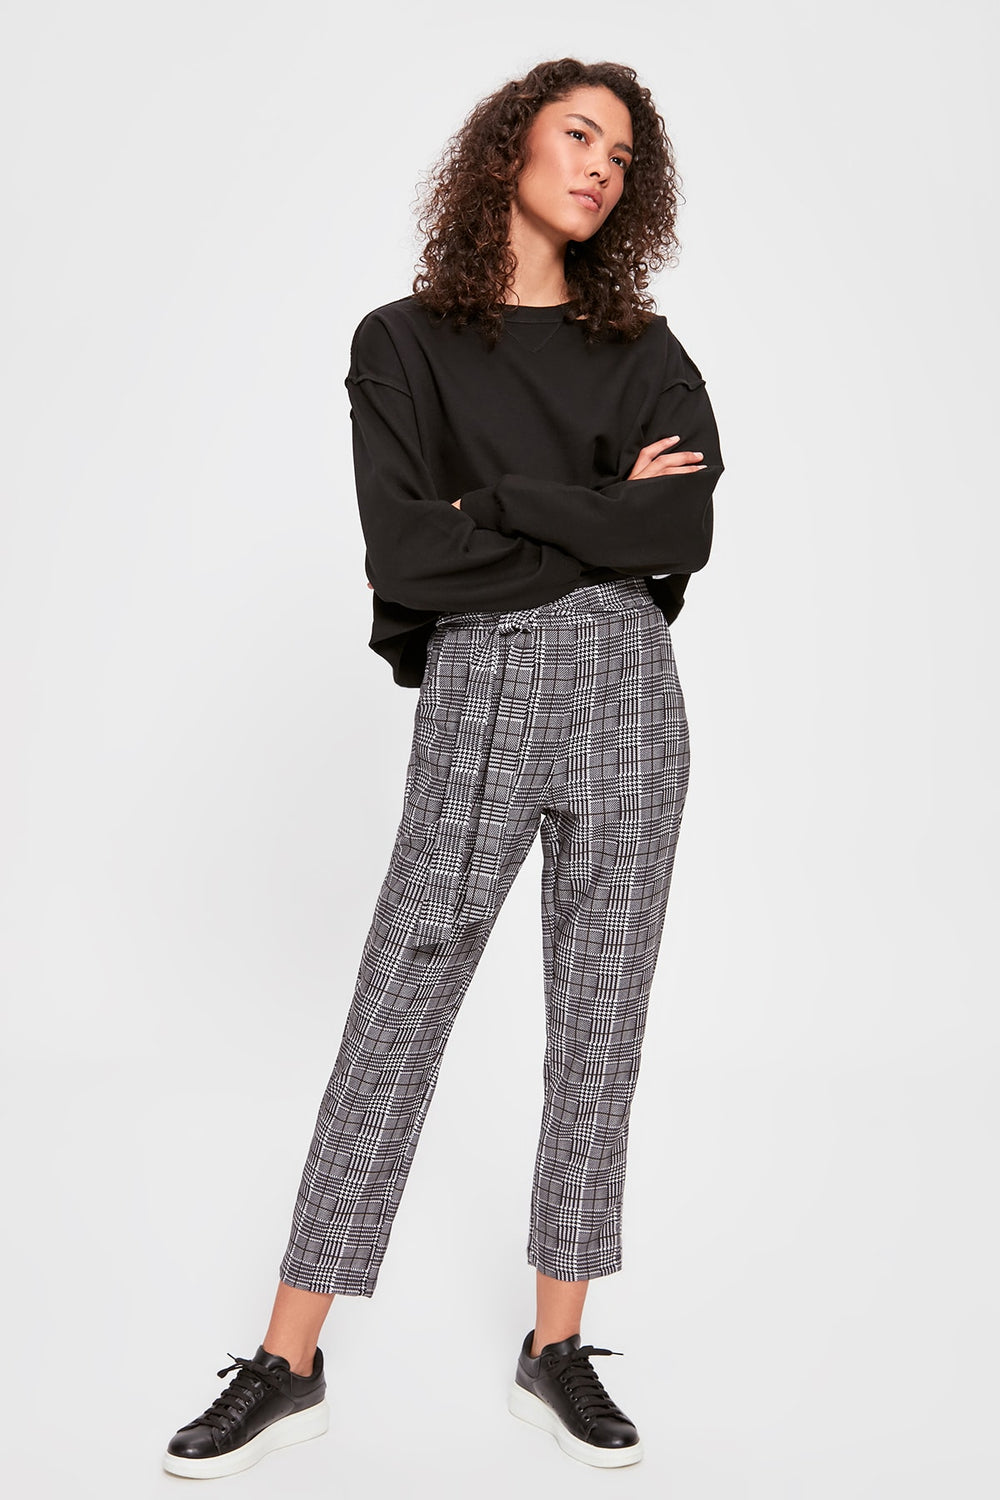 Miss Zut Miss Zut Gray Lacing Detailed Plaid Pants Miss Zut &CO